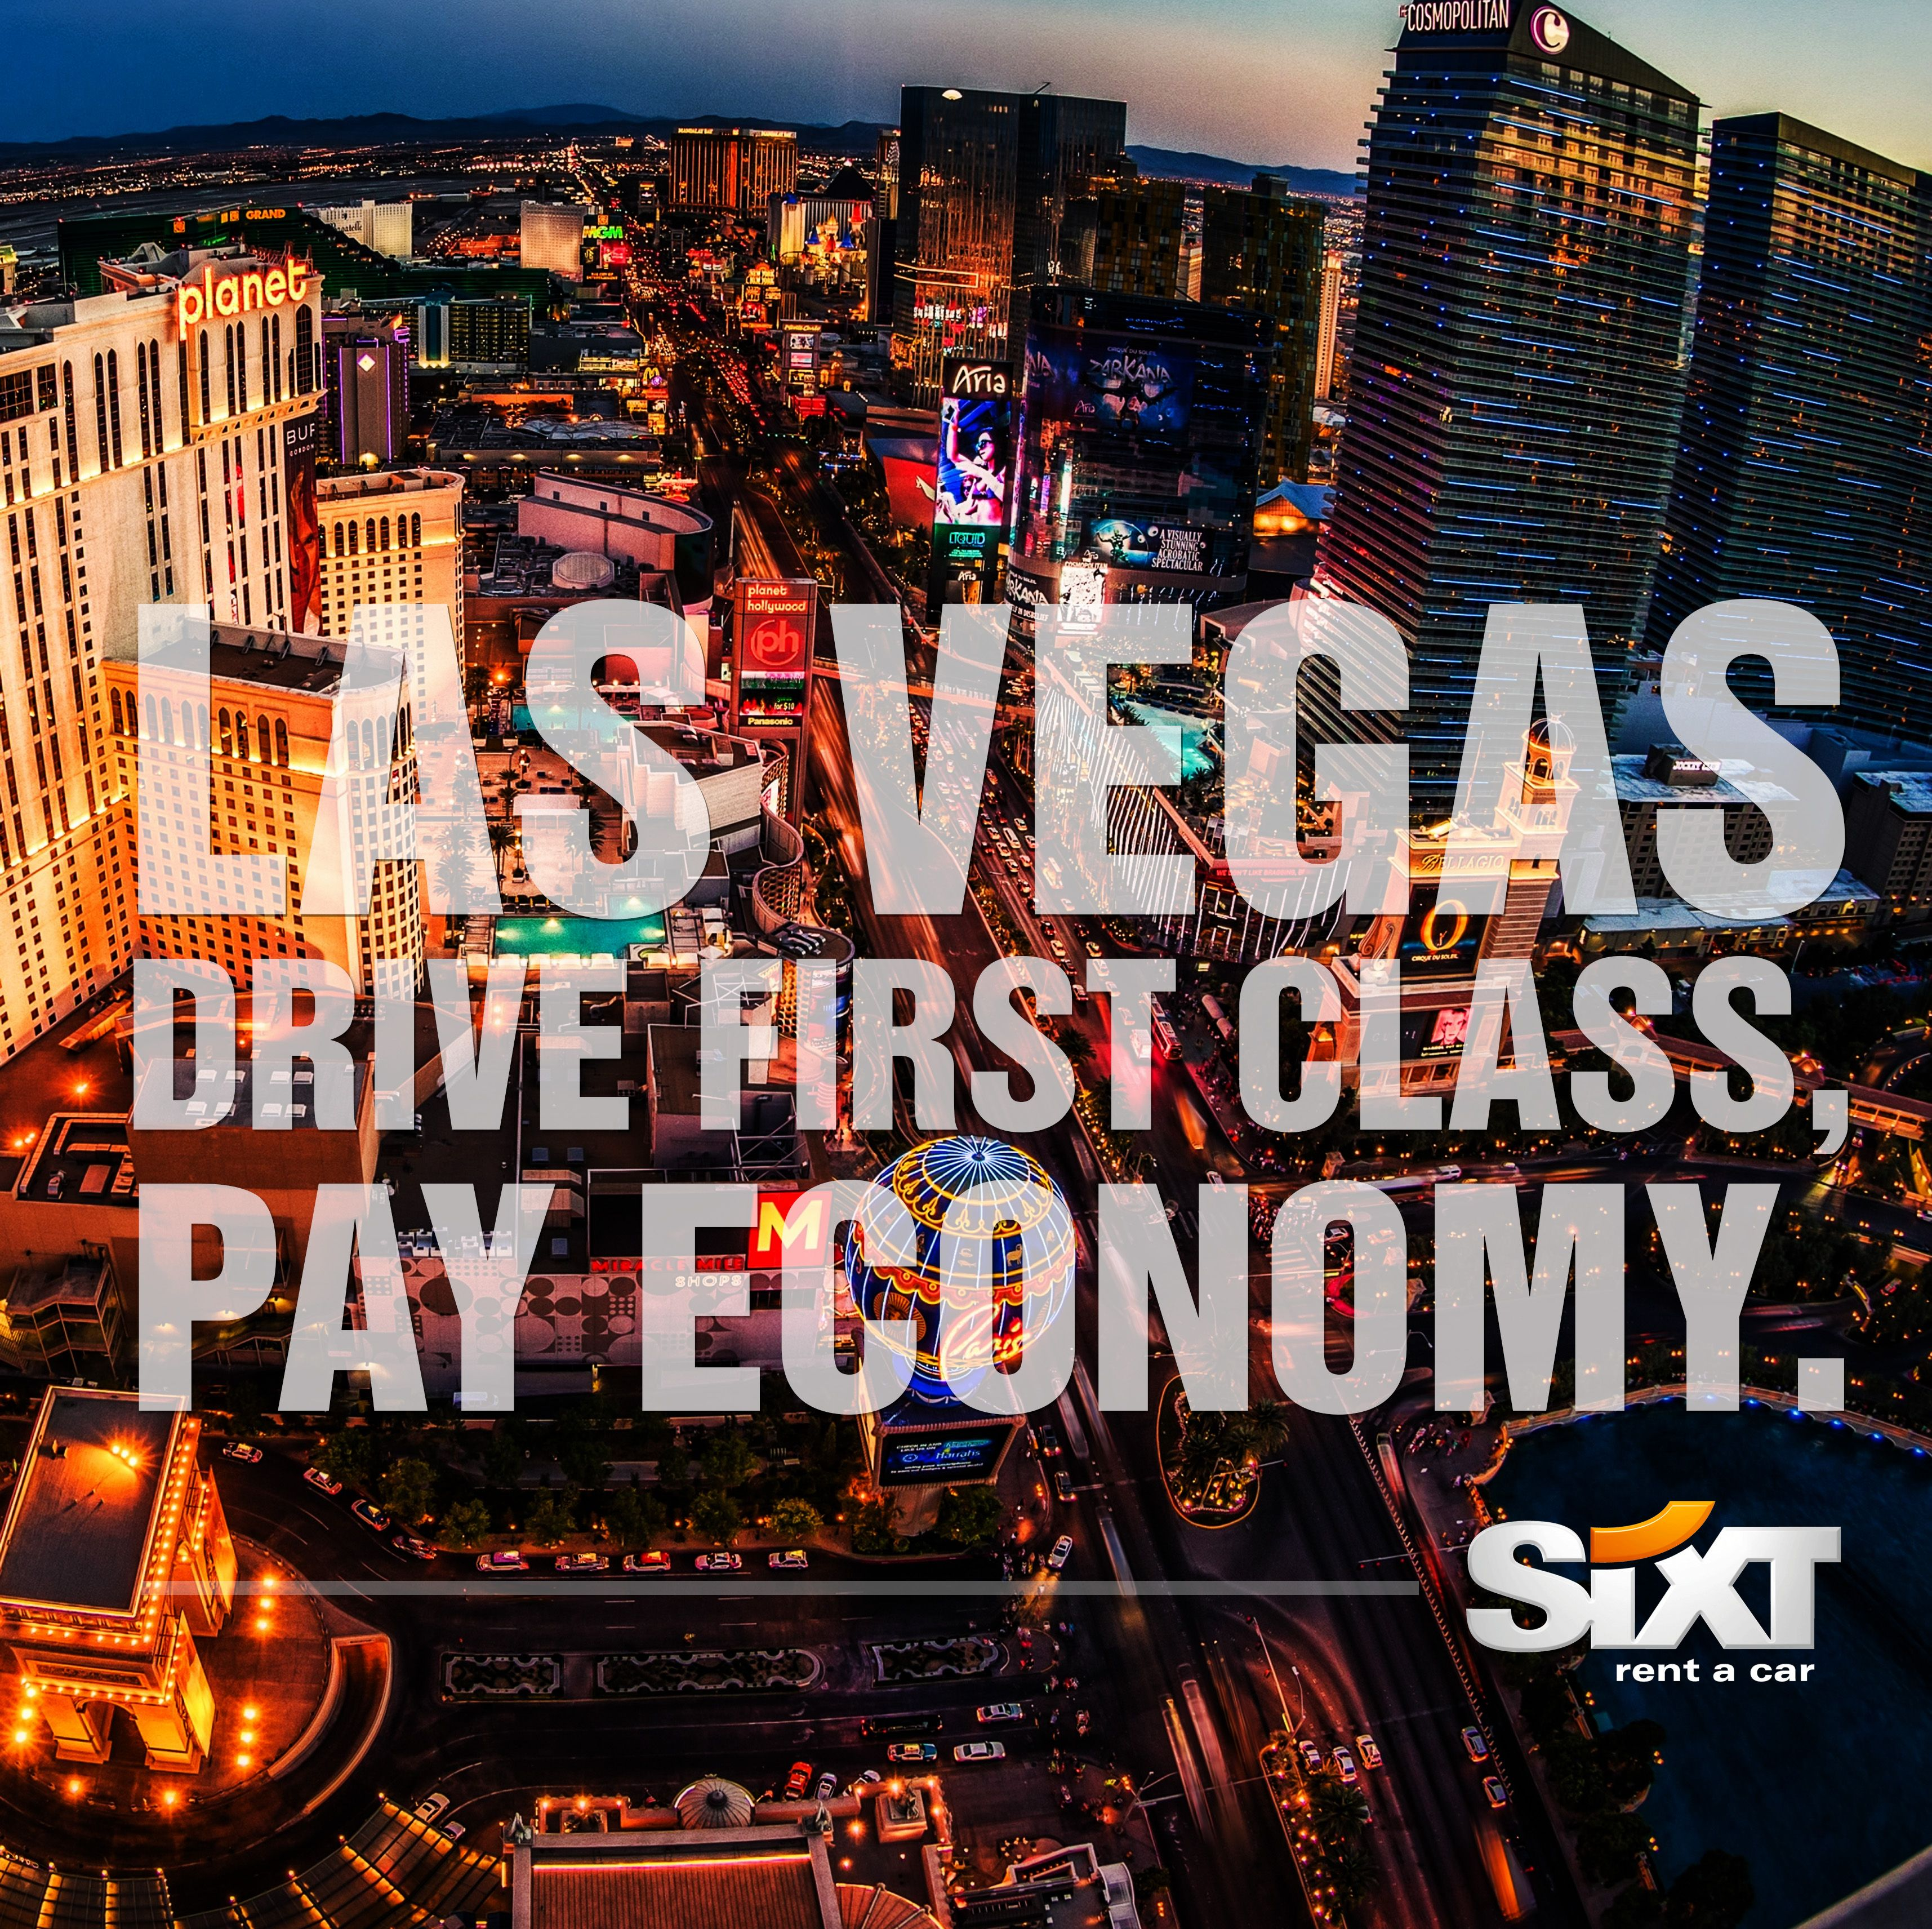 Drive first class, pay economy. Sixt rent a car Las Vegas